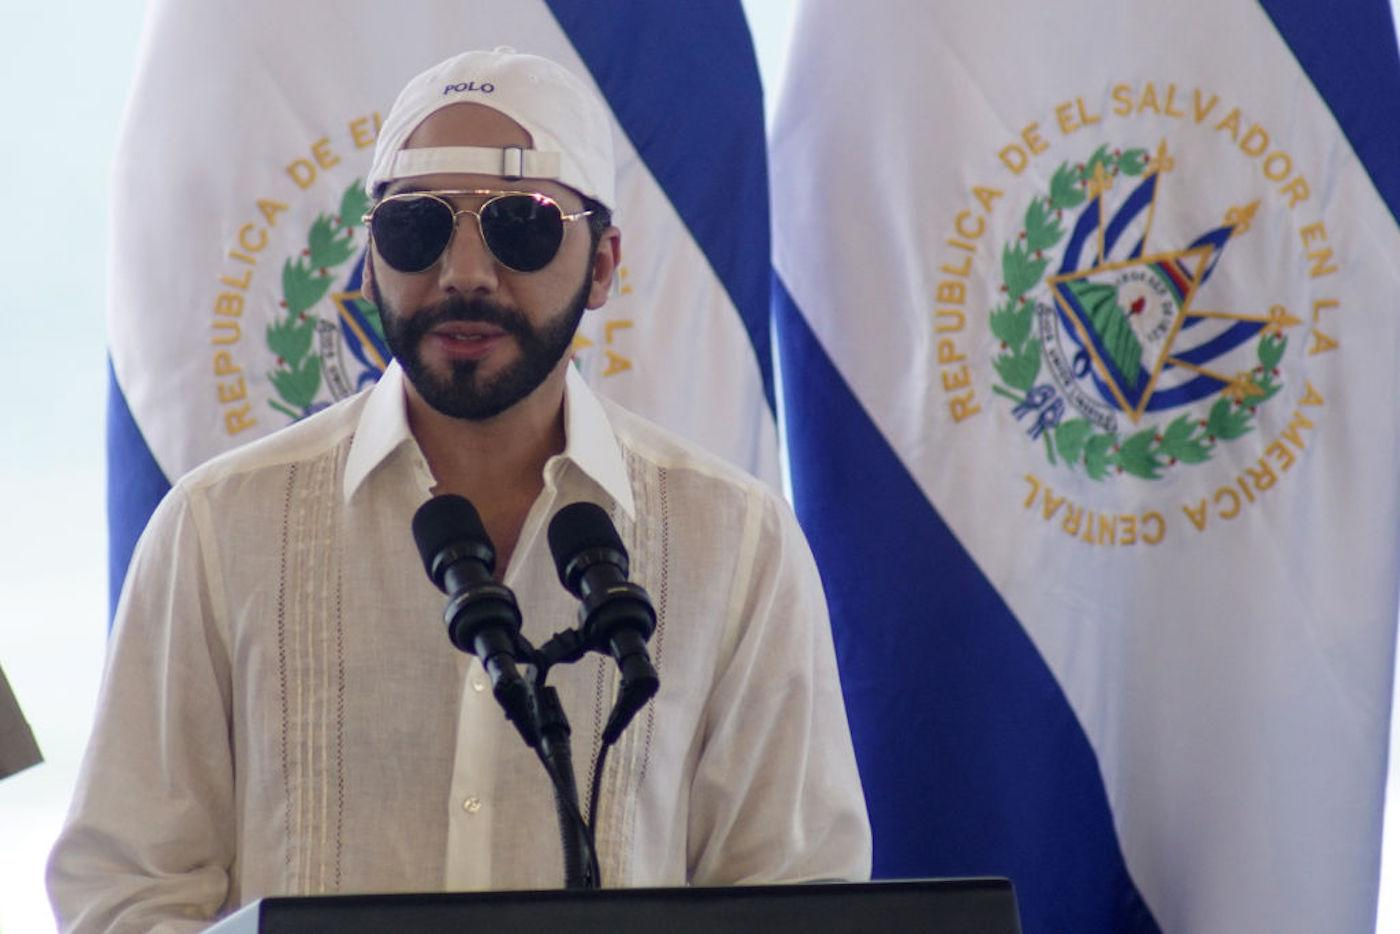 El Salvador May Issue Its Own Stablecoin: Report